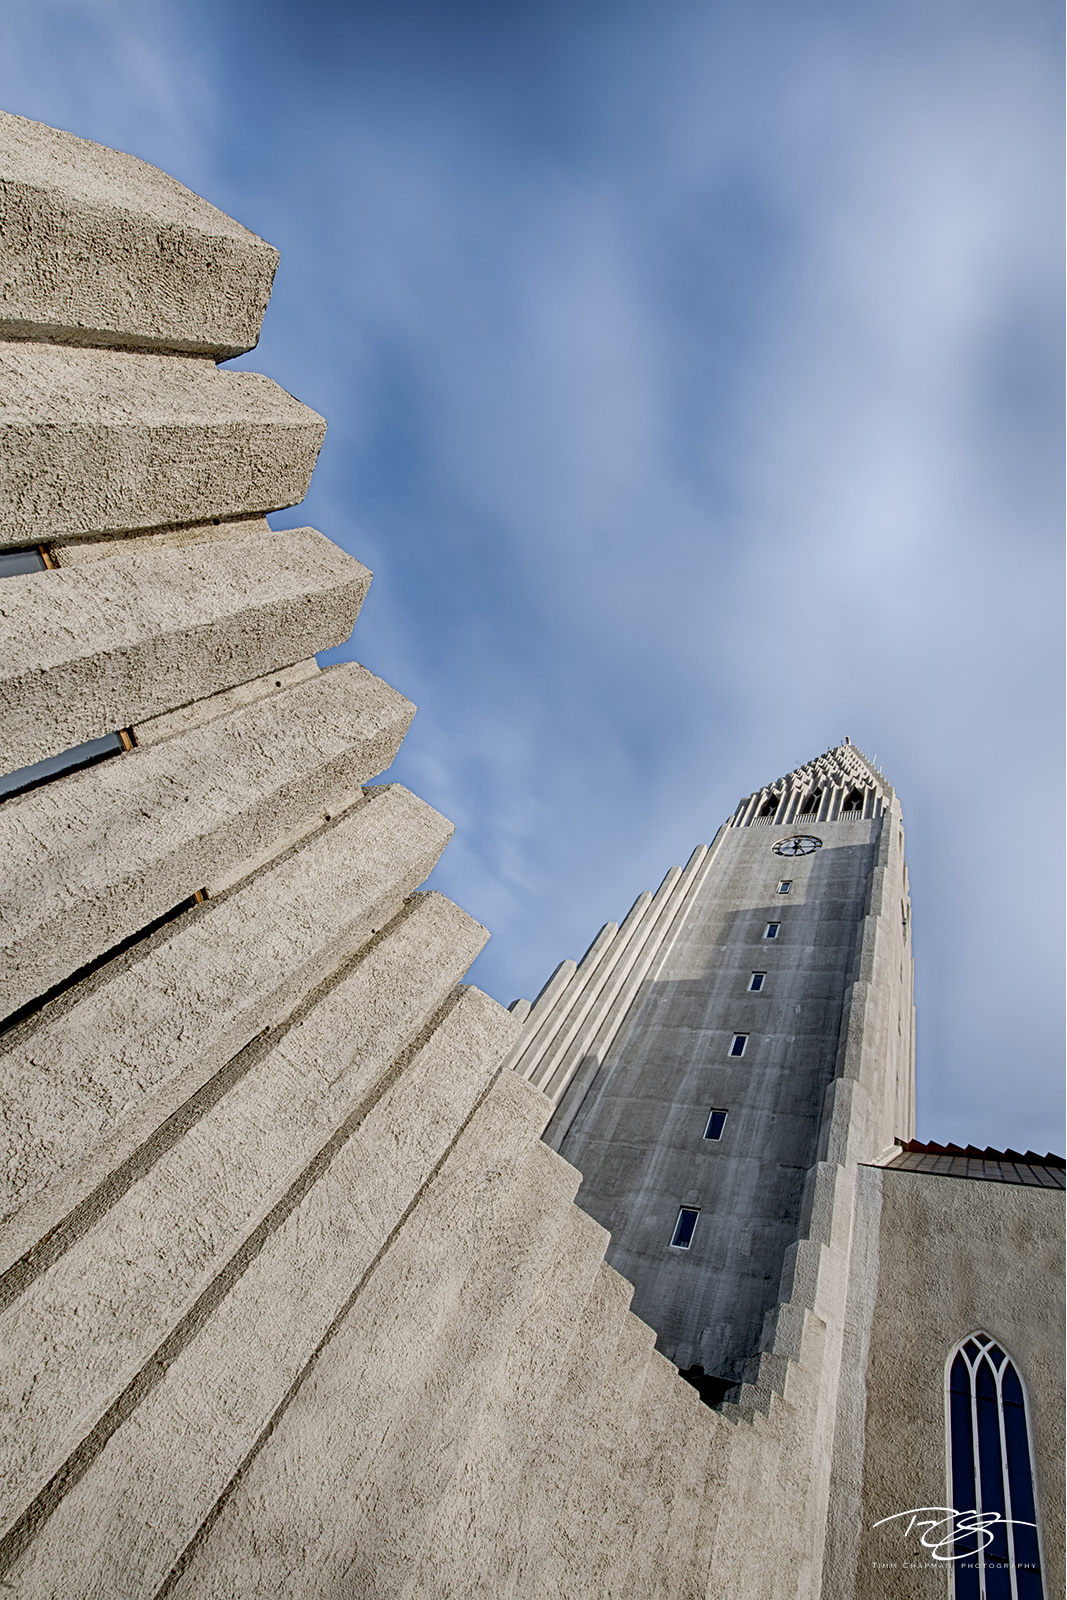 Hallgrimskirkja, church, cathedral, architecture, basalt, columns, chapel, cathedral, salvation, beacon, cross, abstract, photo